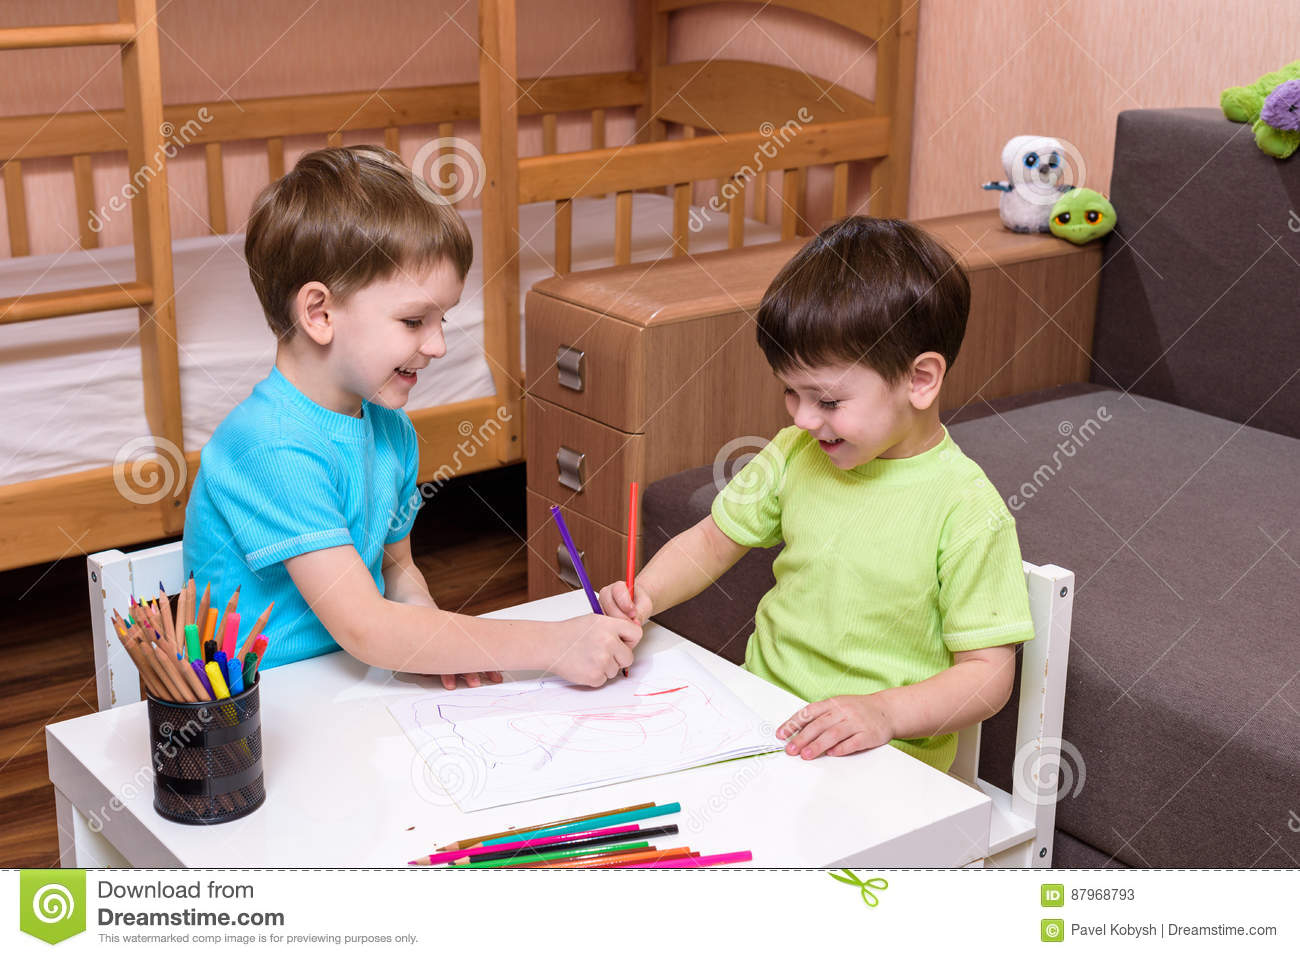 Two little caucasian friends playing with lots of colorful plastic blocks indoor. Active kid boys, siblings having fun building an